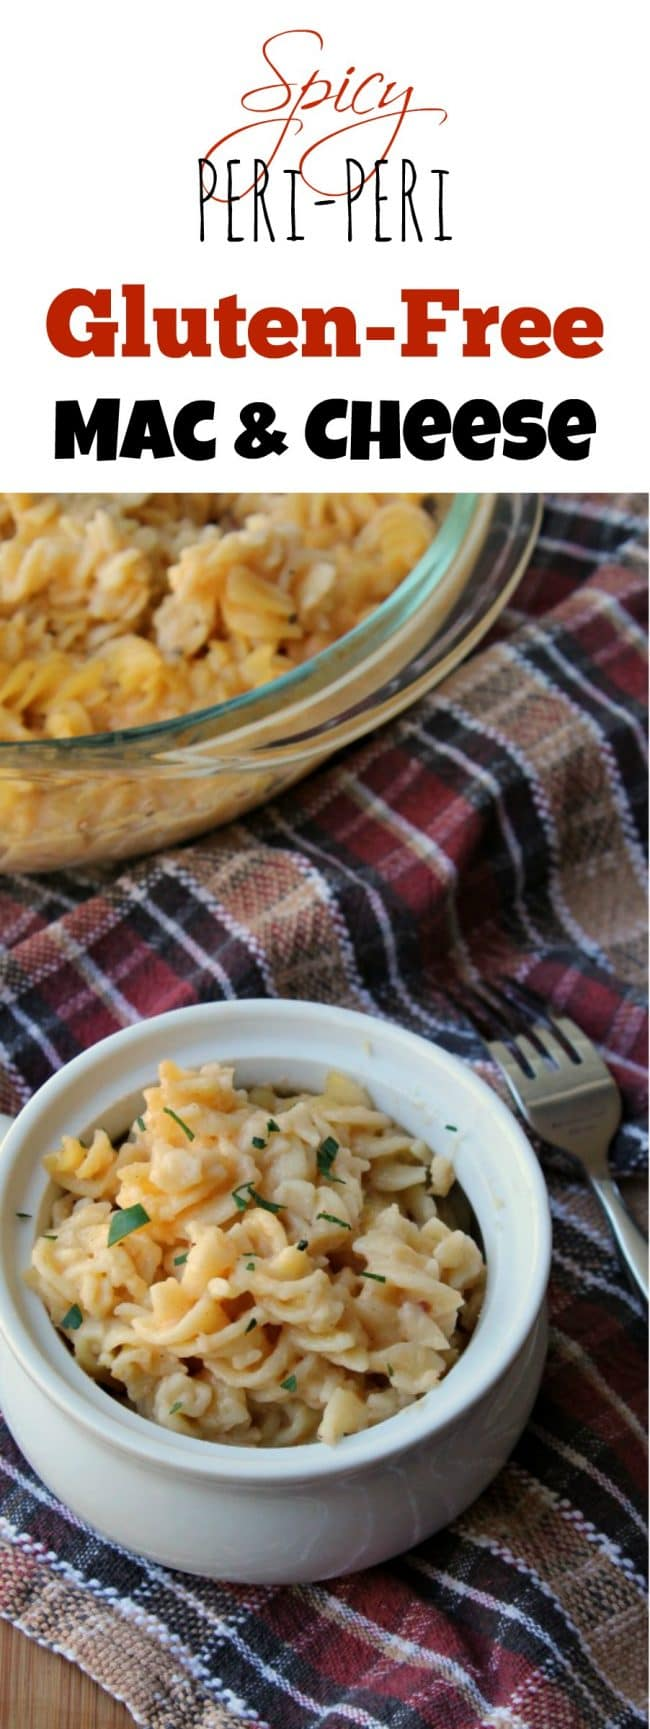 Spicy PERi-PERi Gluten Free Mac and Cheese - Foody Schmoody Blog ...